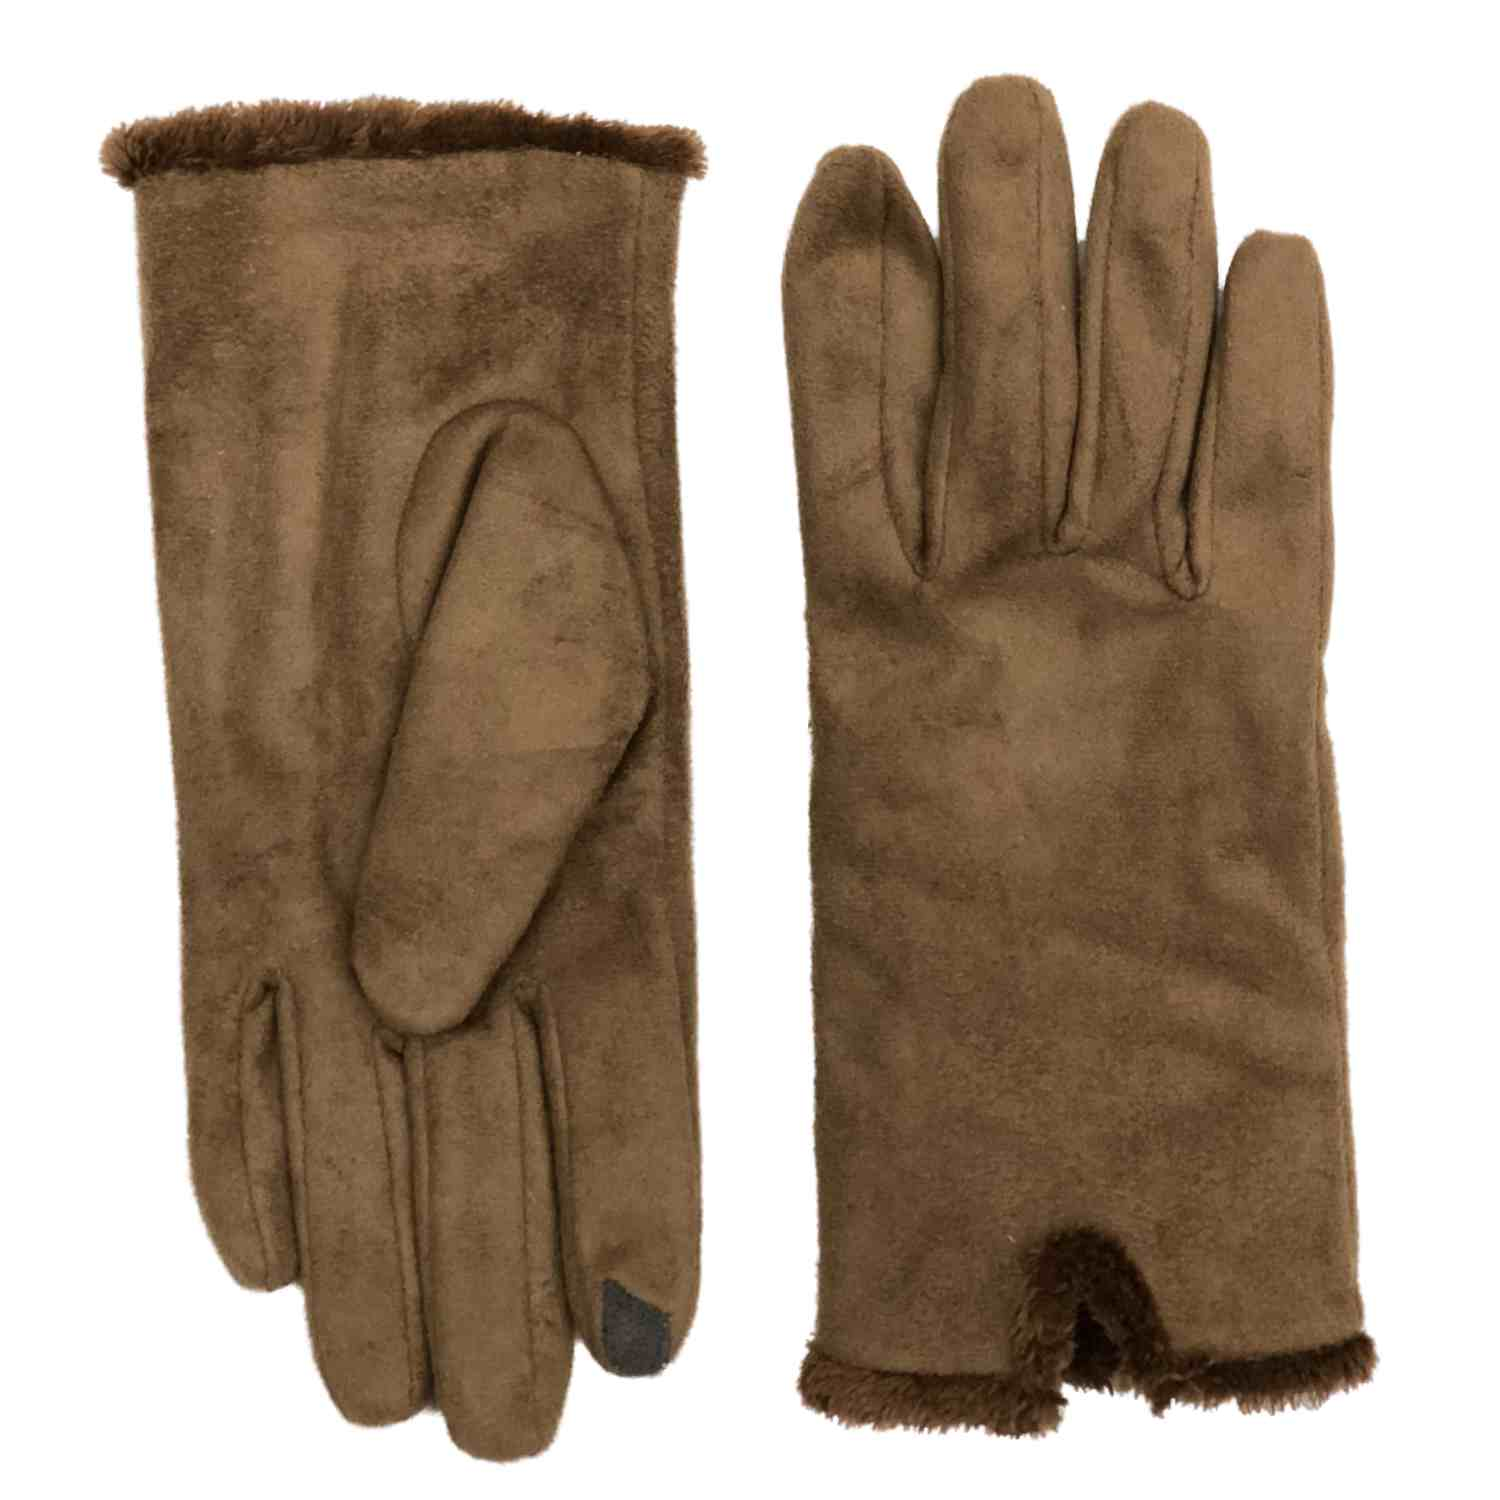 Isotoner Smart Touch Womens Caramel Brown Brushed Mircofiber Gloves Smartouch